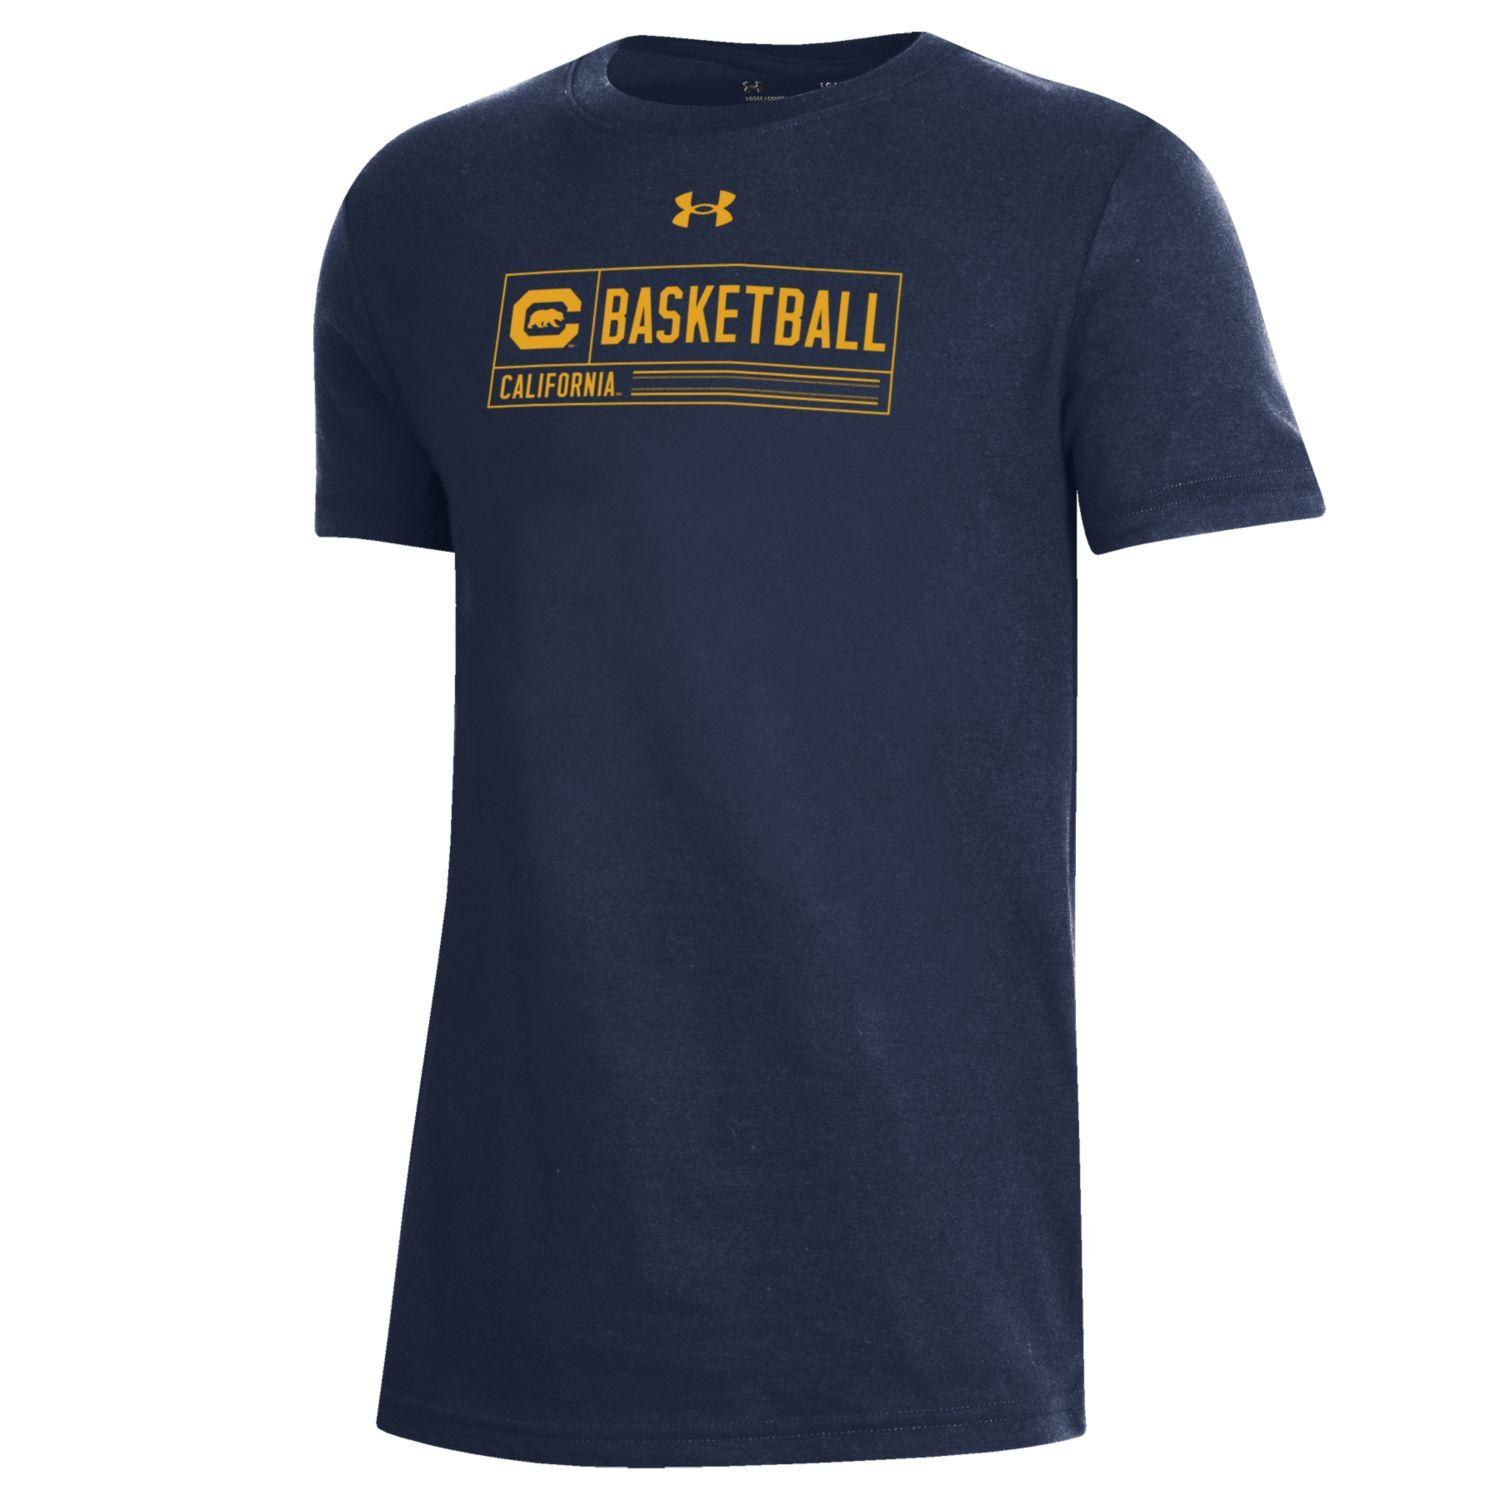 Youth B Performance Cotton SS Tee Basketball